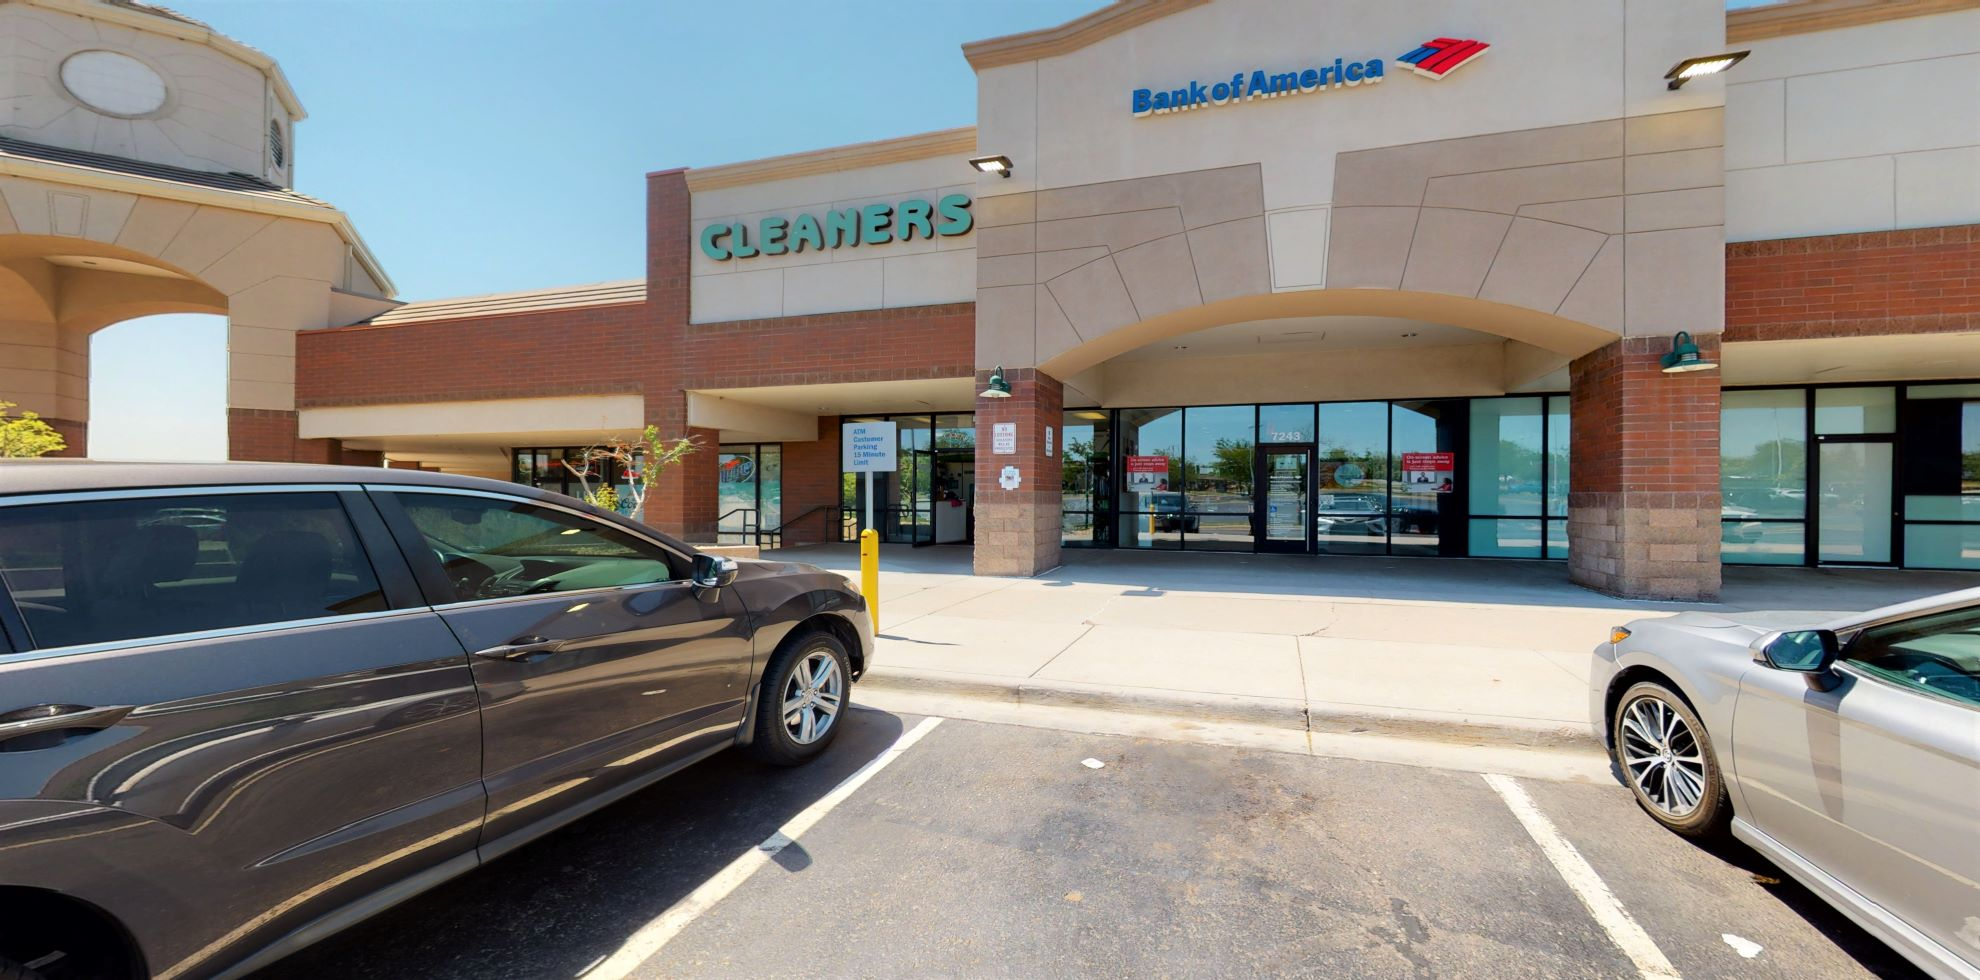 Bank of America Advanced Center with walk-up ATM | 7243 Federal Blvd, Westminster, CO 80030